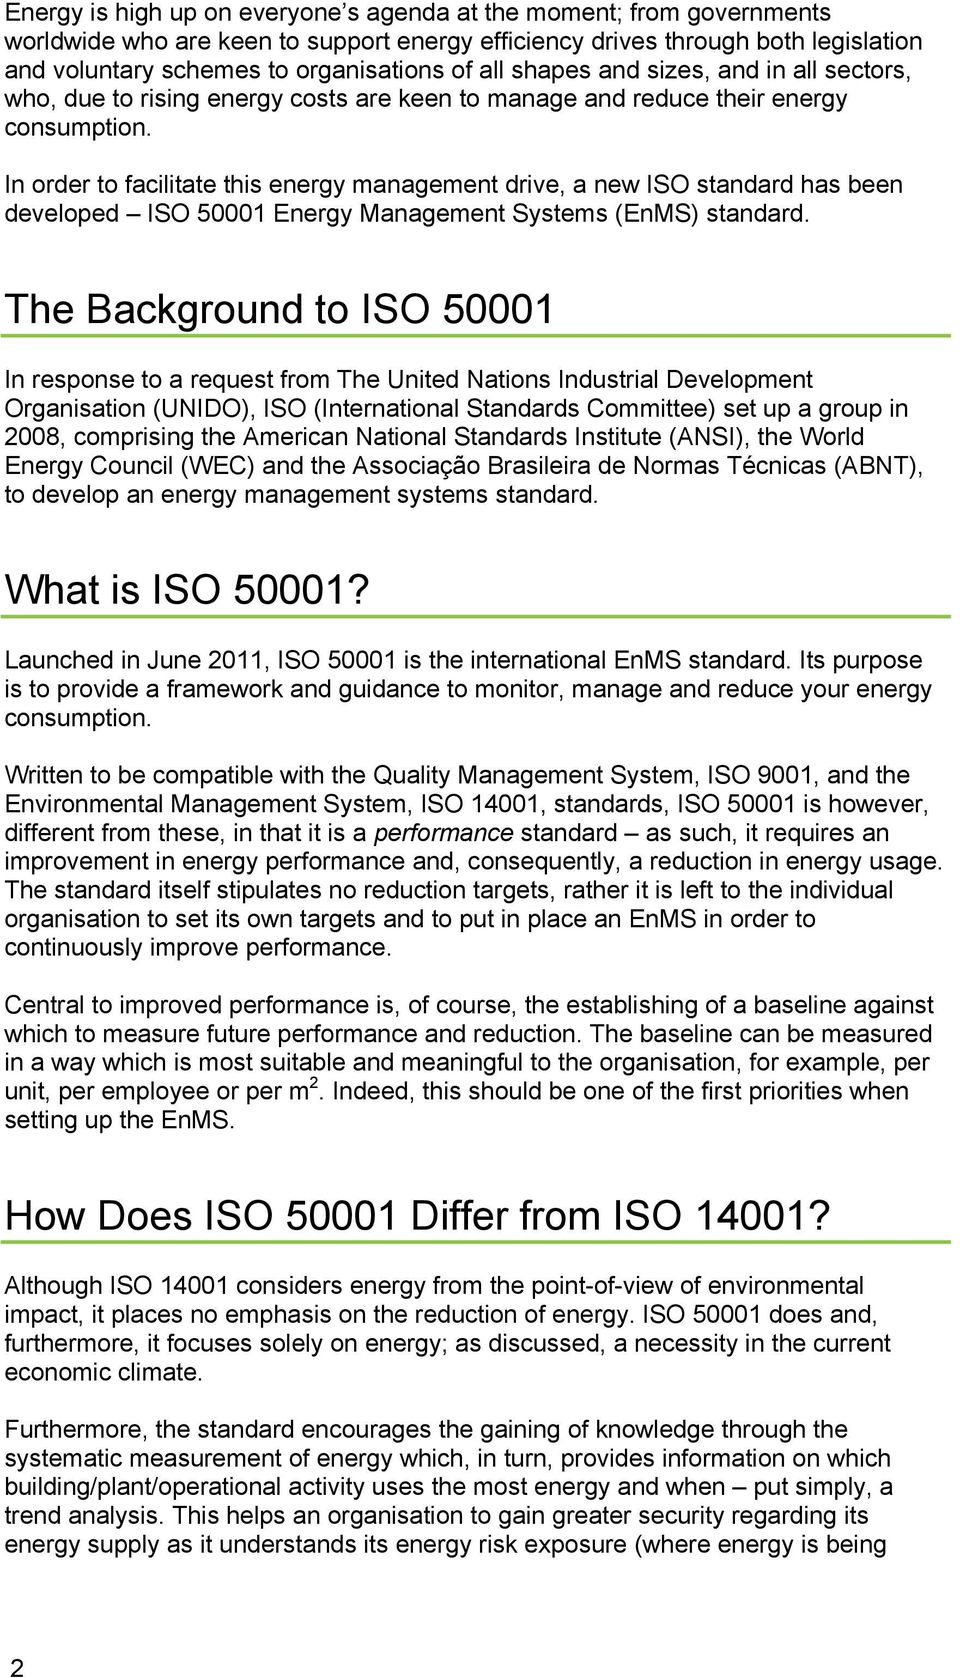 In order to facilitate this energy management drive, a new ISO standard has been developed ISO 50001 Energy Management Systems (EnMS) standard.